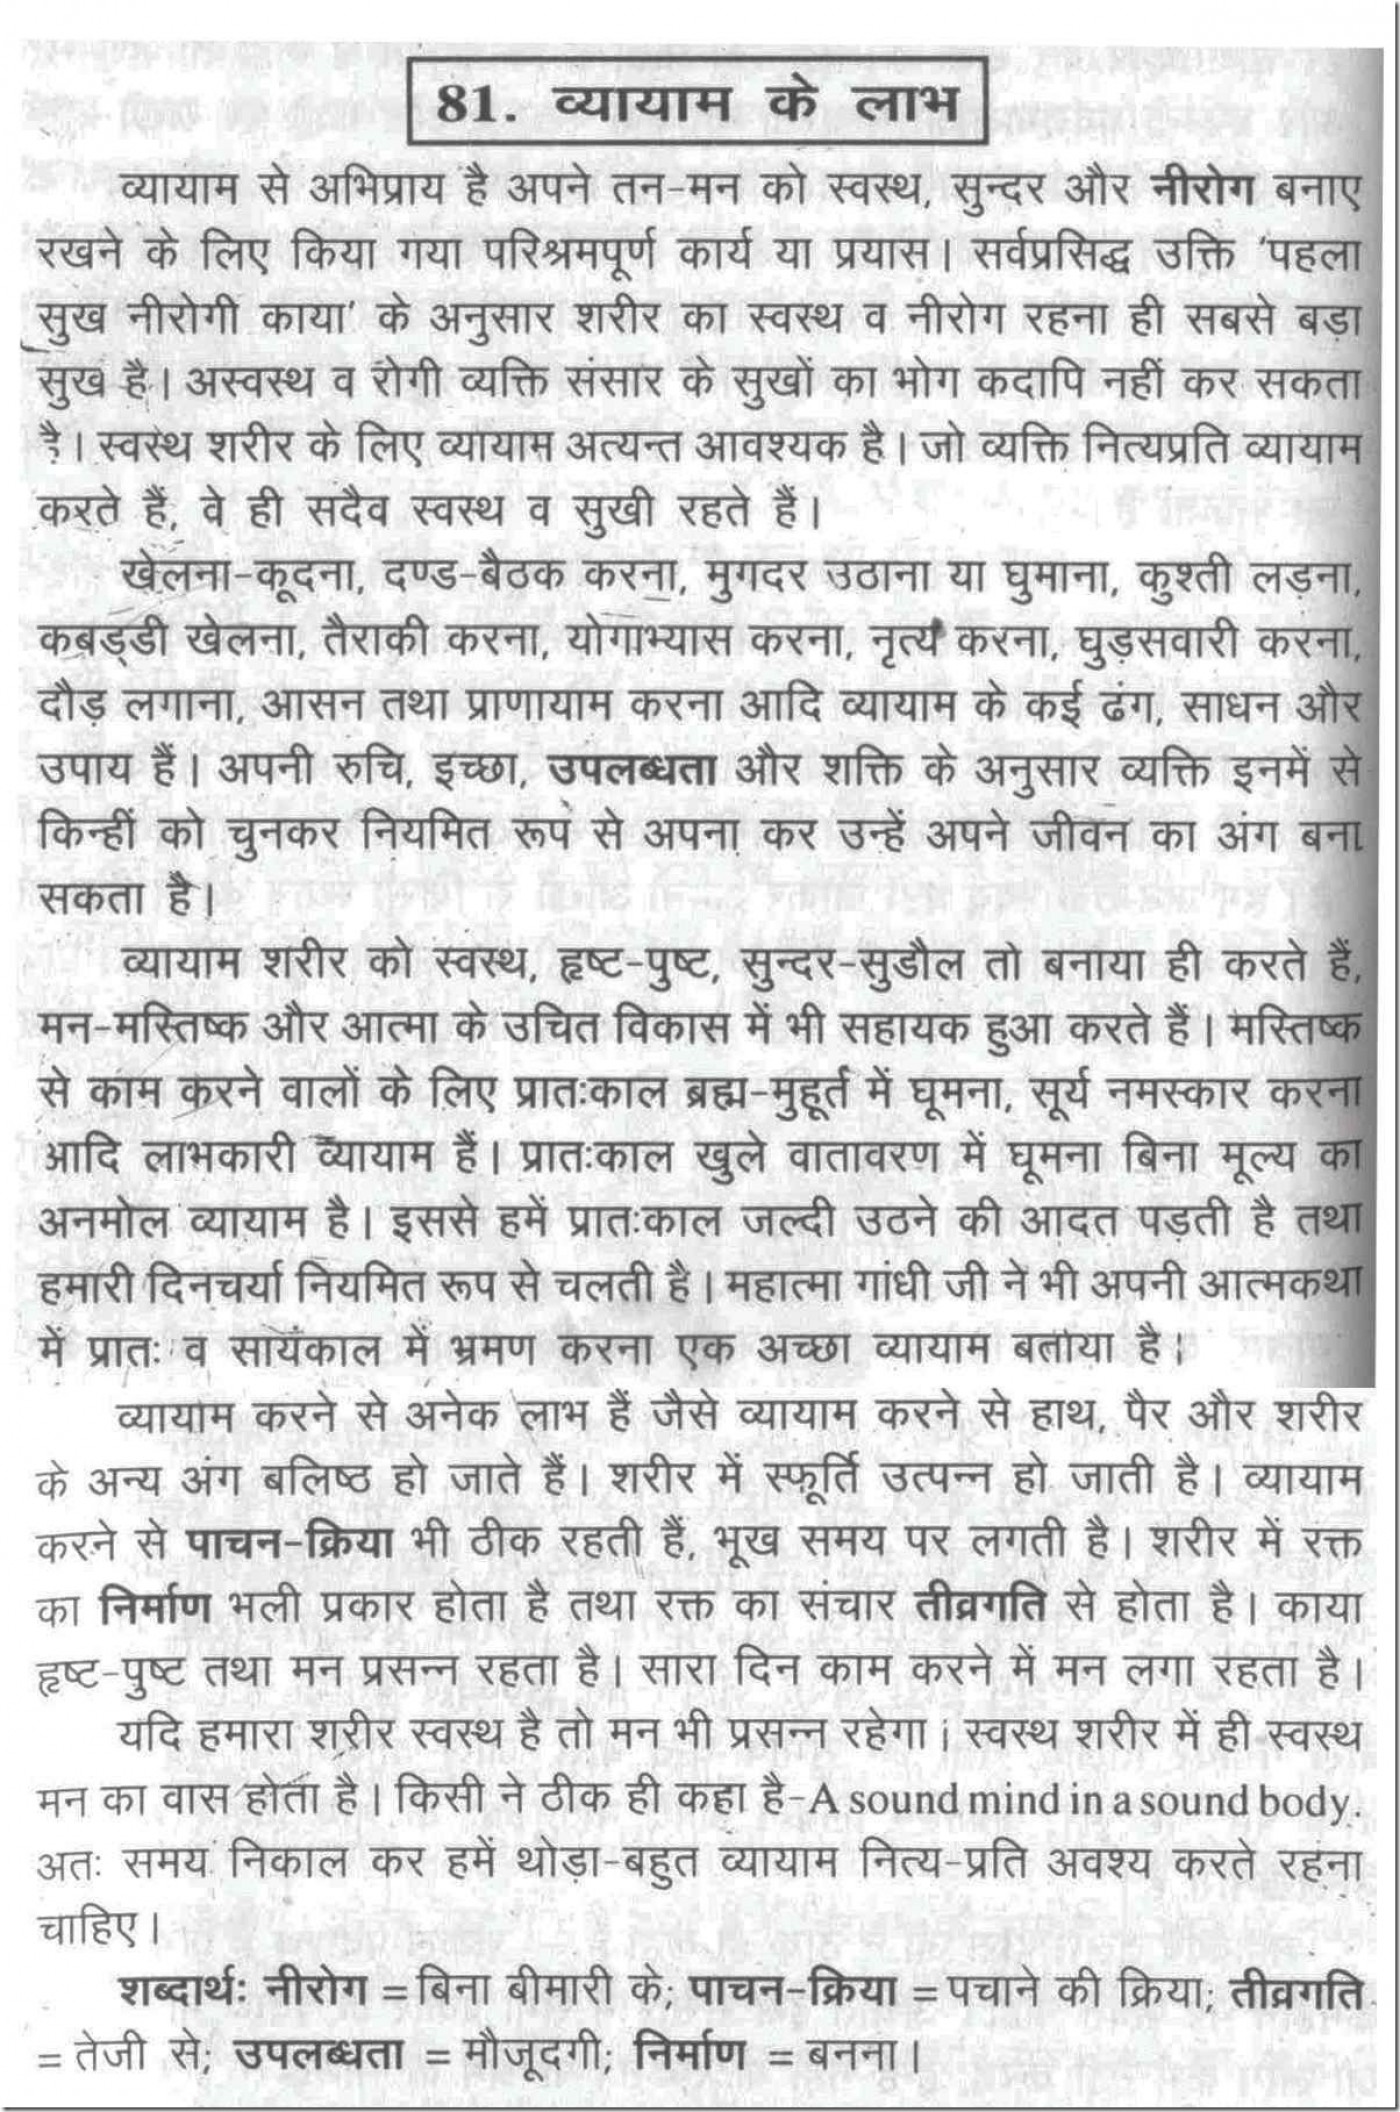 011 2563478896 Essay On Health And Fitness Through Food Good Habits In Hindi Exceptional Habit Eating Bad 1400